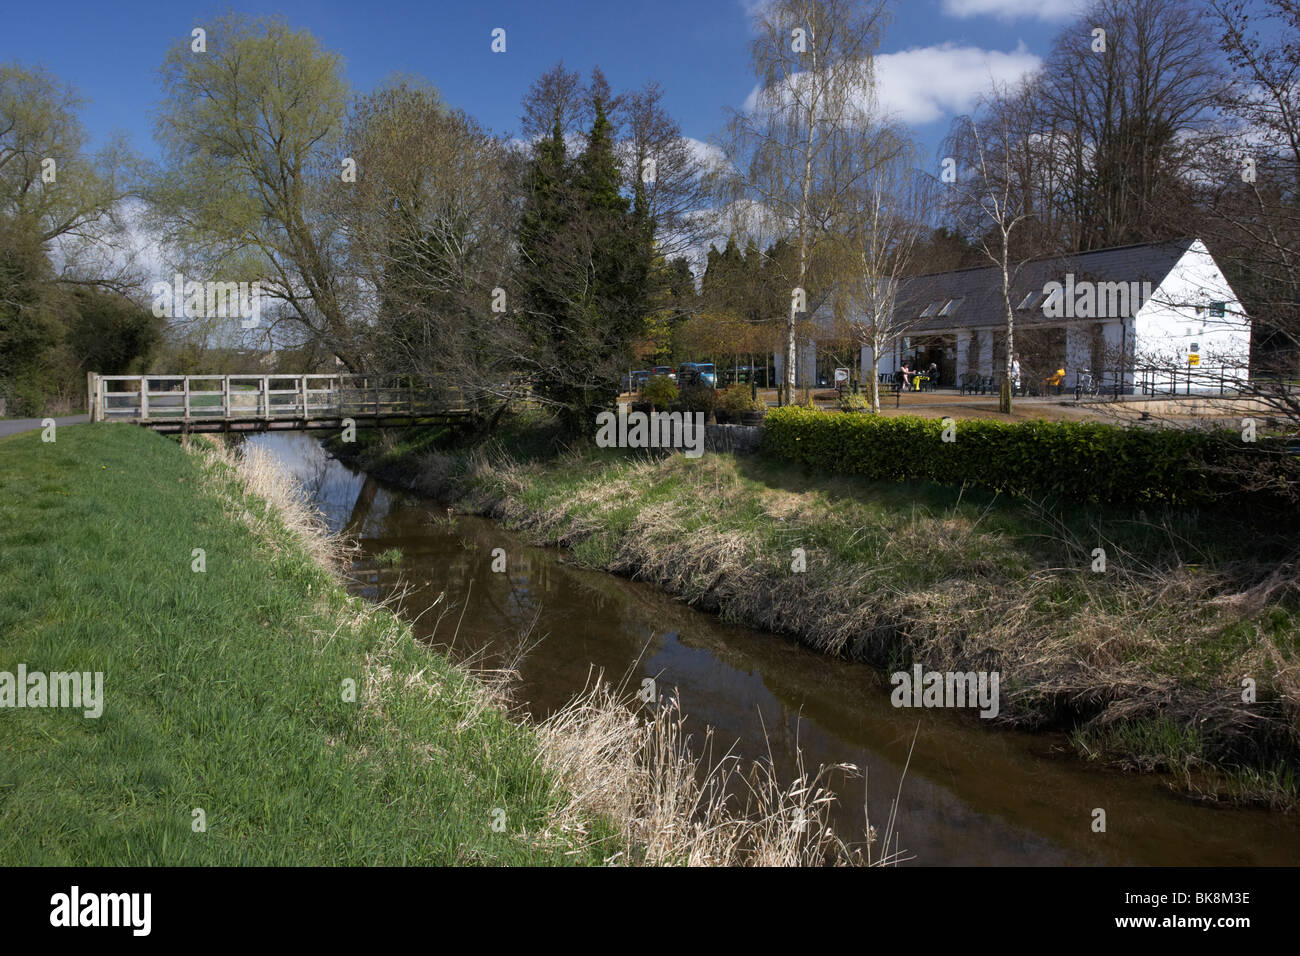 newry canal and scarva visitor centre and tea rooms in village county down northern ireland uk Stock Photo